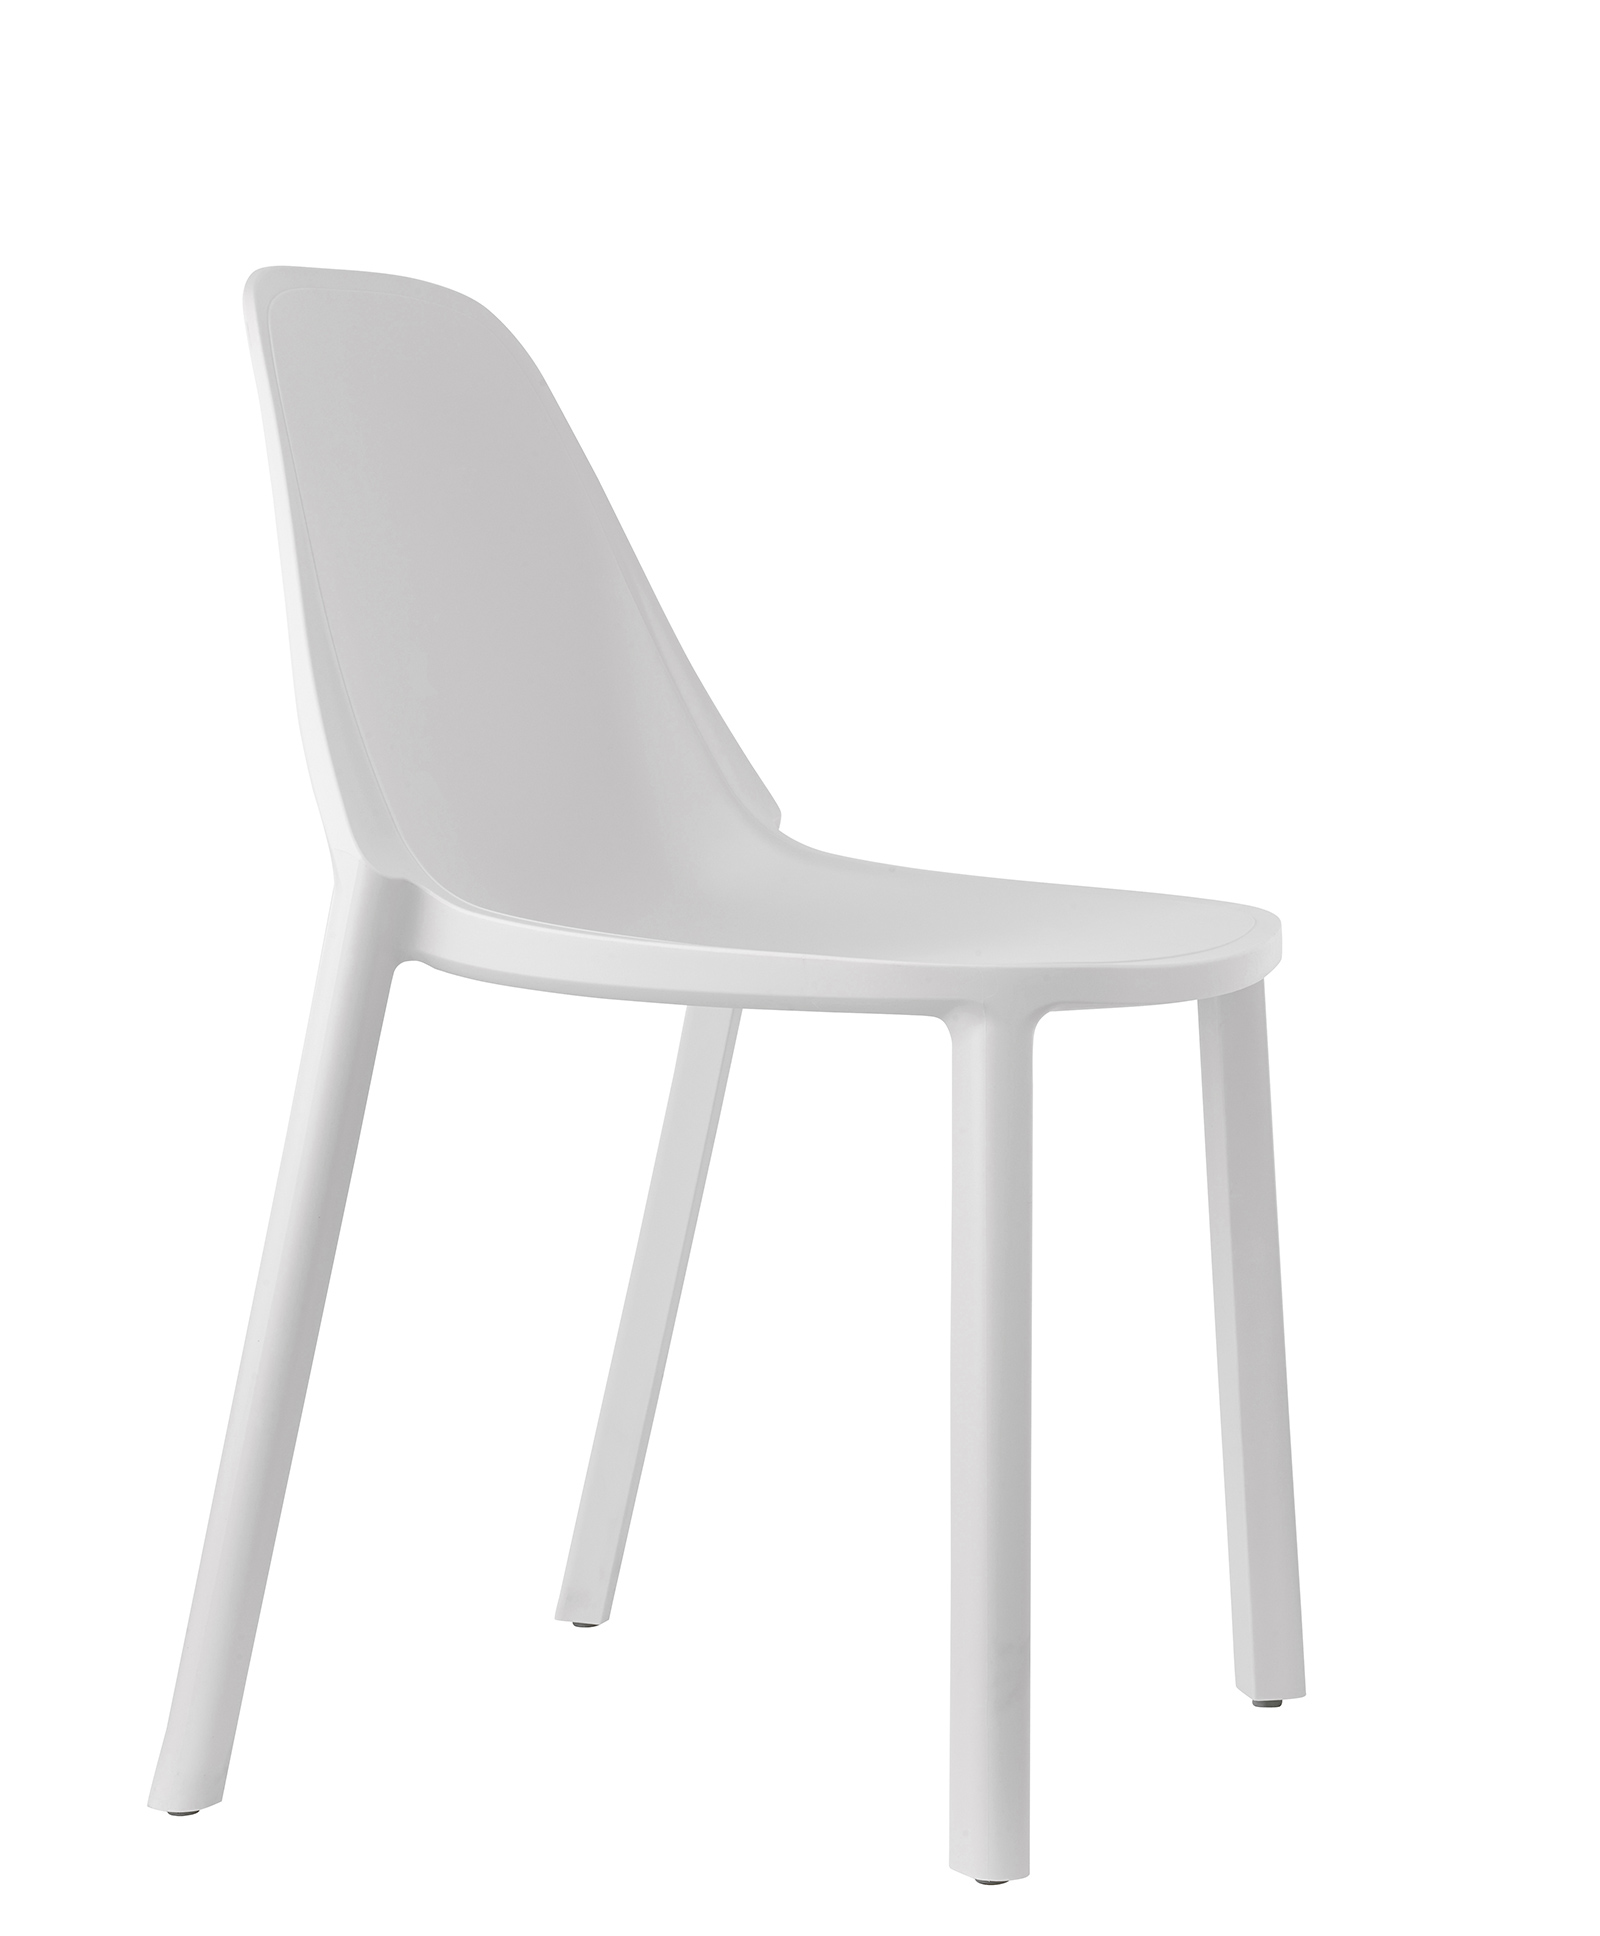 remix plastic stackable cafe chair white stakelum office